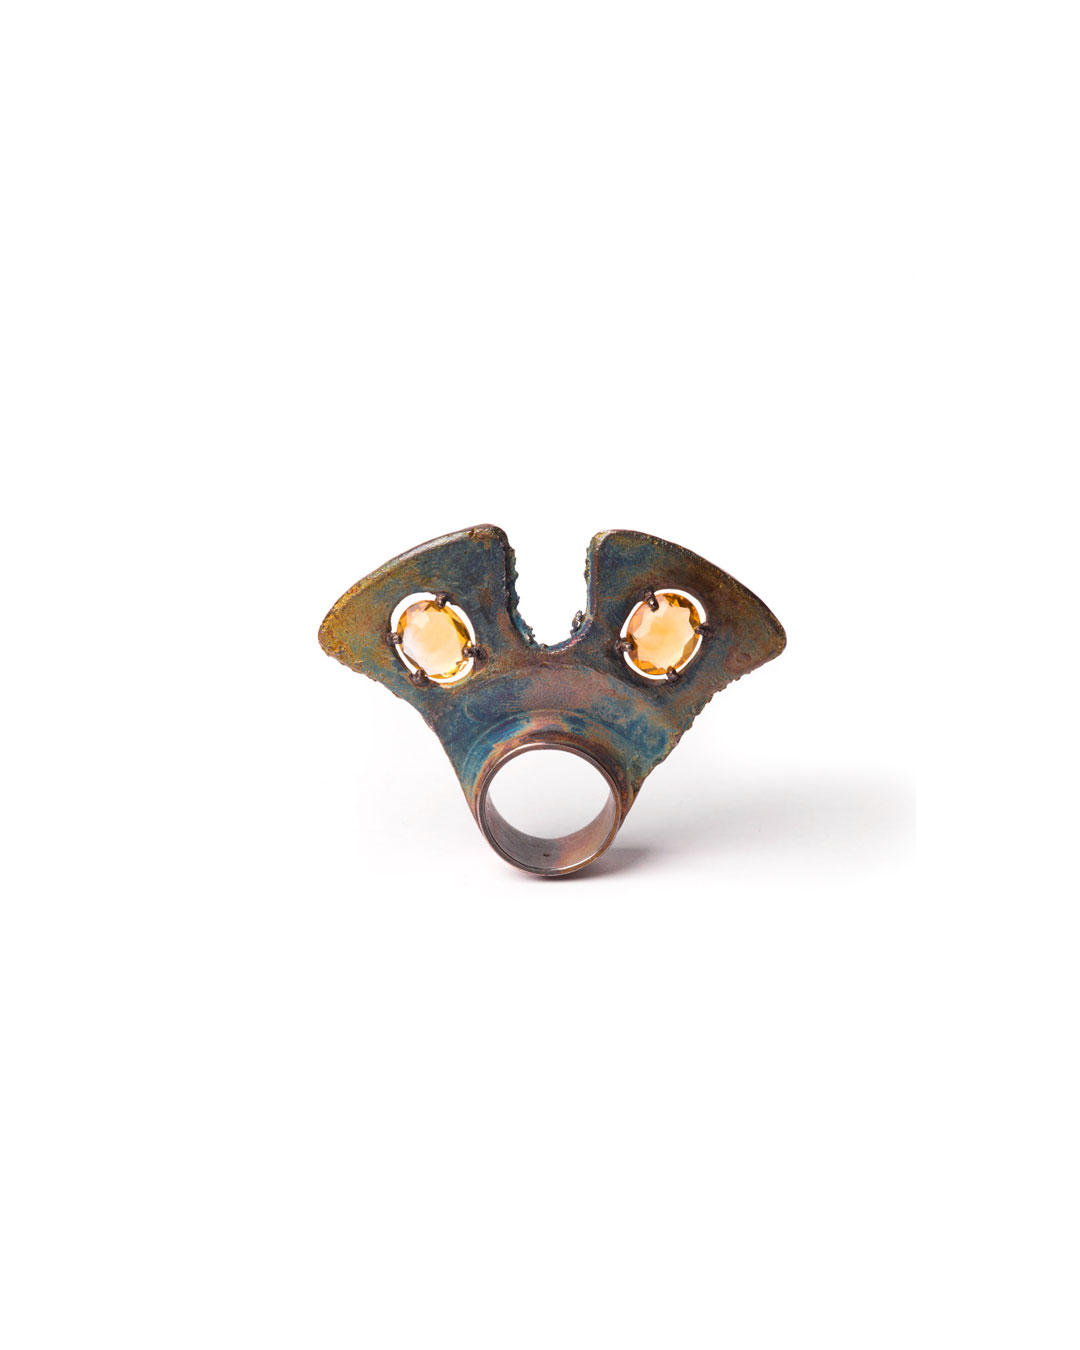 Winfried Krüger, untitled, 1996, ring; oxidised silver, citrine, 70 x 50 mm, €1335